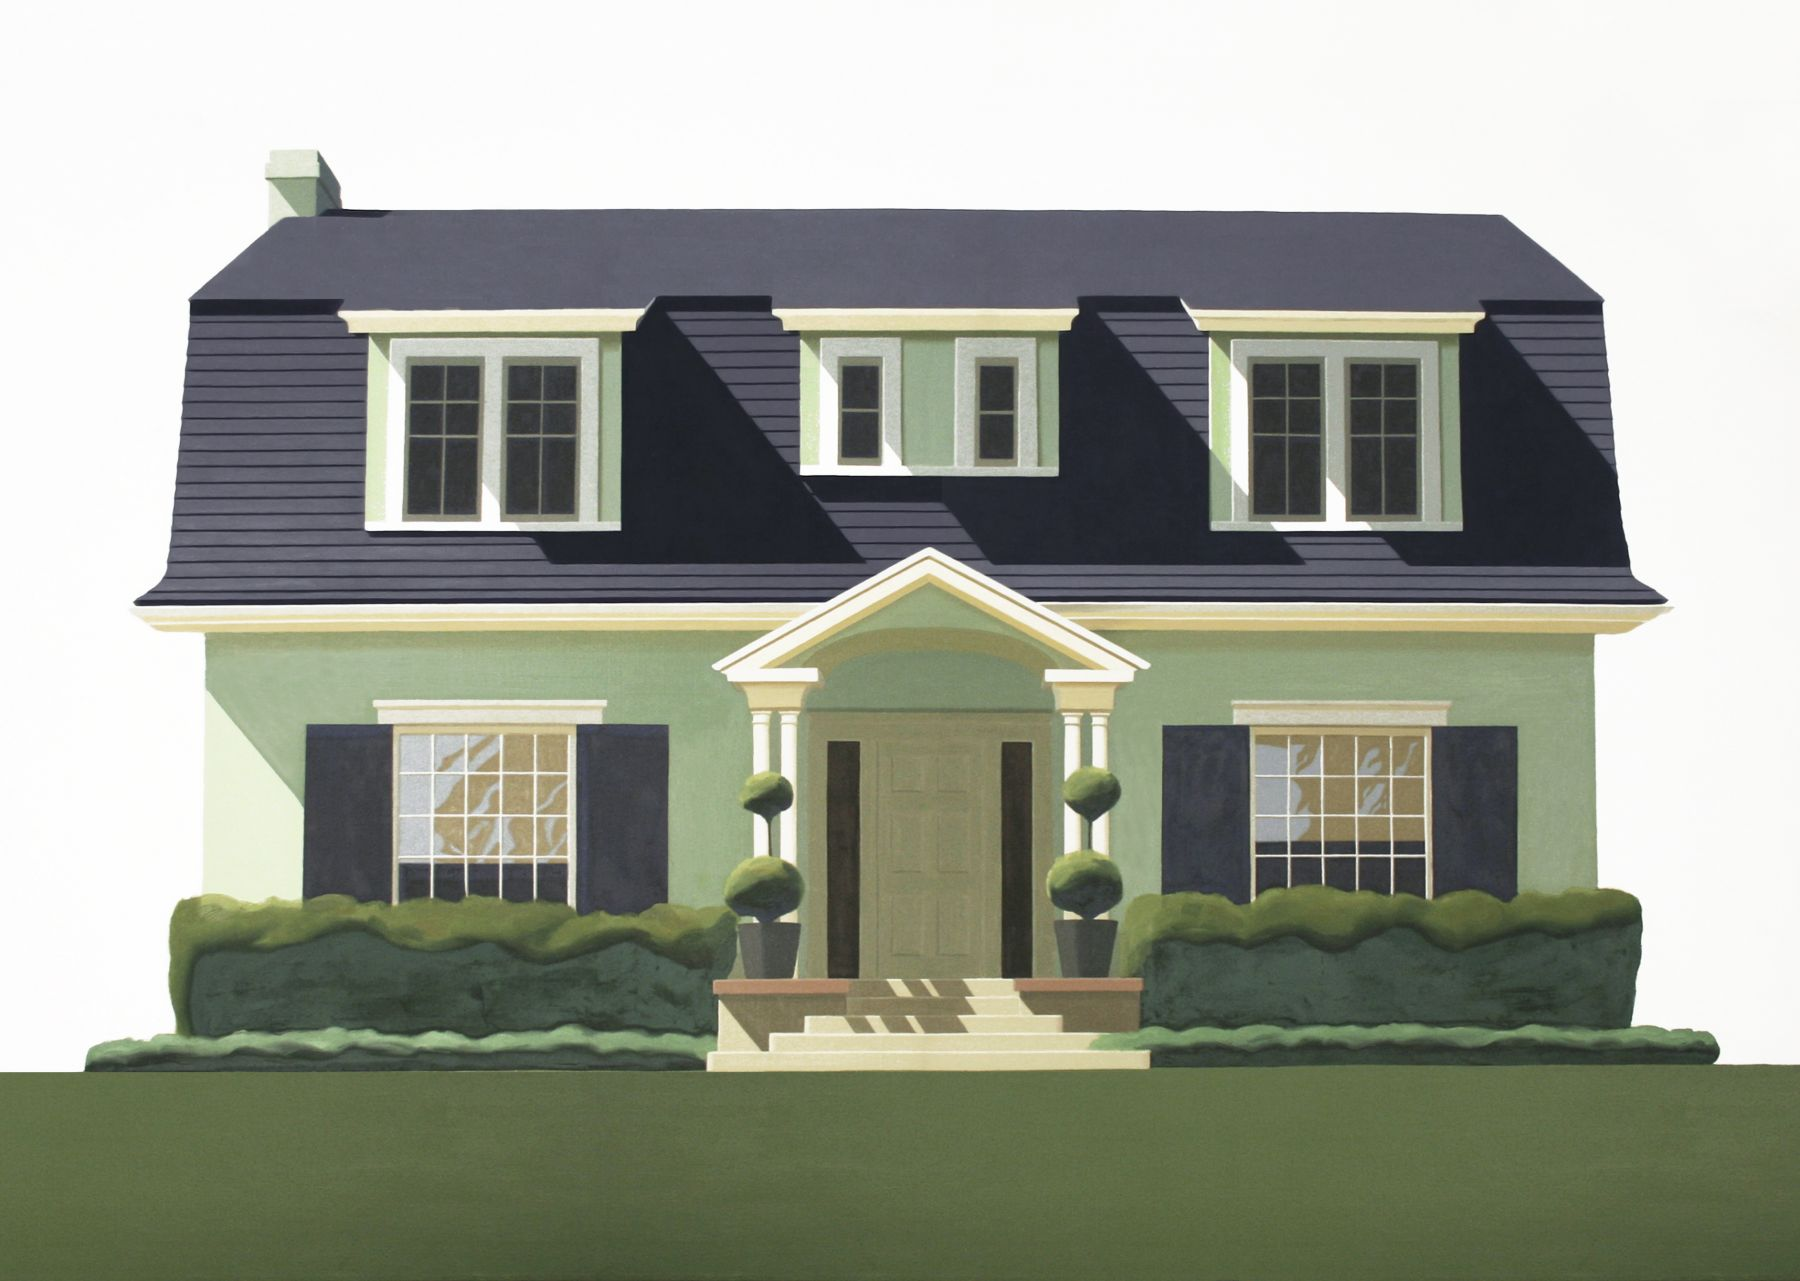 Robert Cottingham, House on Windsor, 1969, oil on canvas, 51 x 72 inches